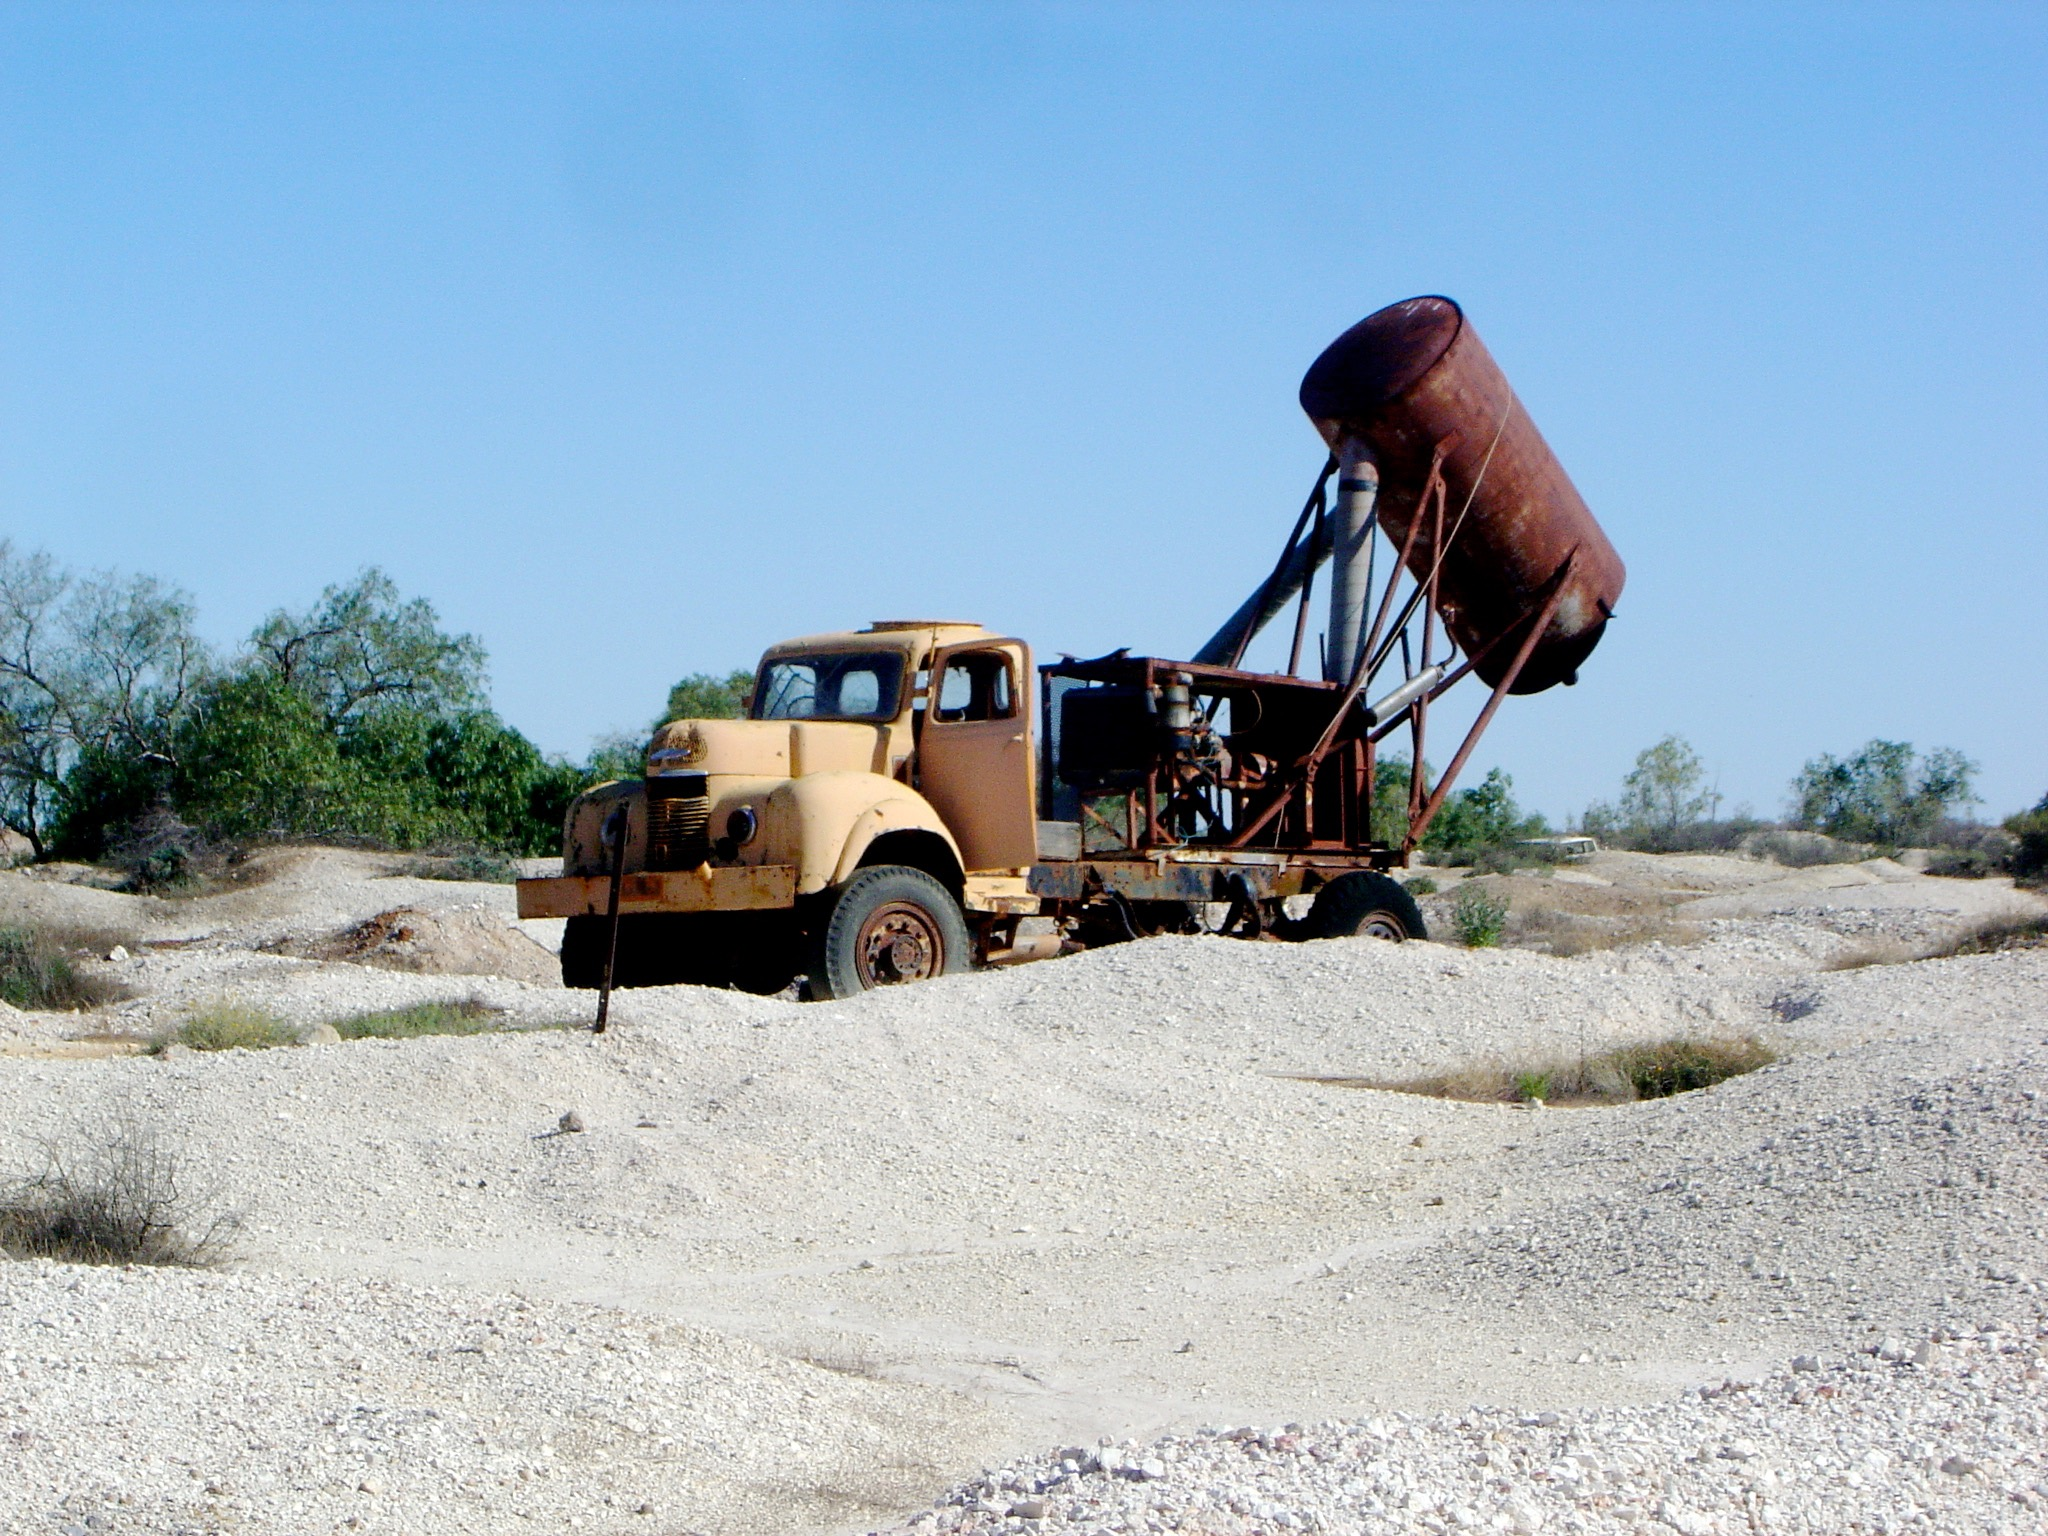 Old truck used for blowing opal dirt